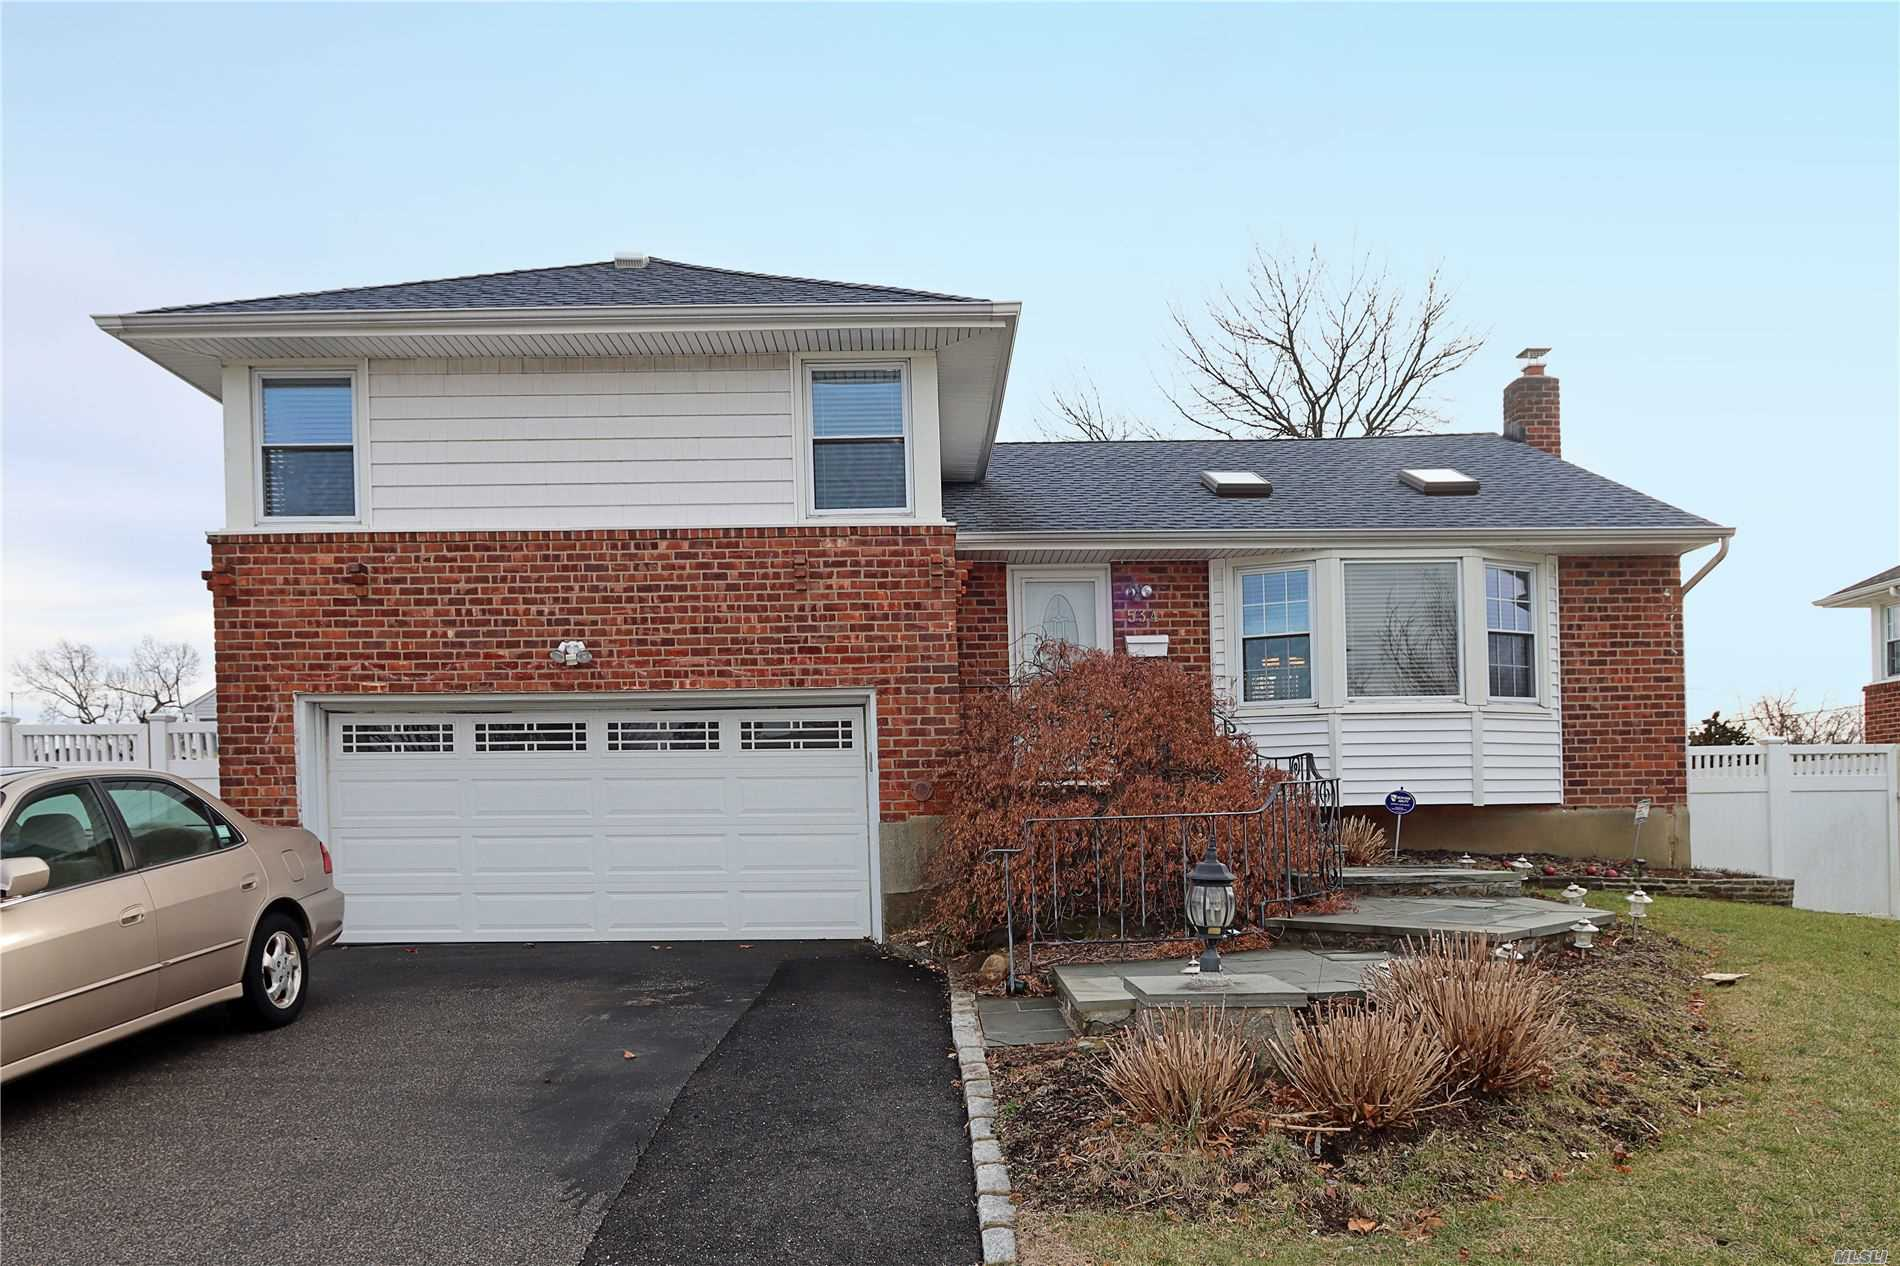 534 N Suffolk Ave 11758 - One of Massapequa Homes for Sale